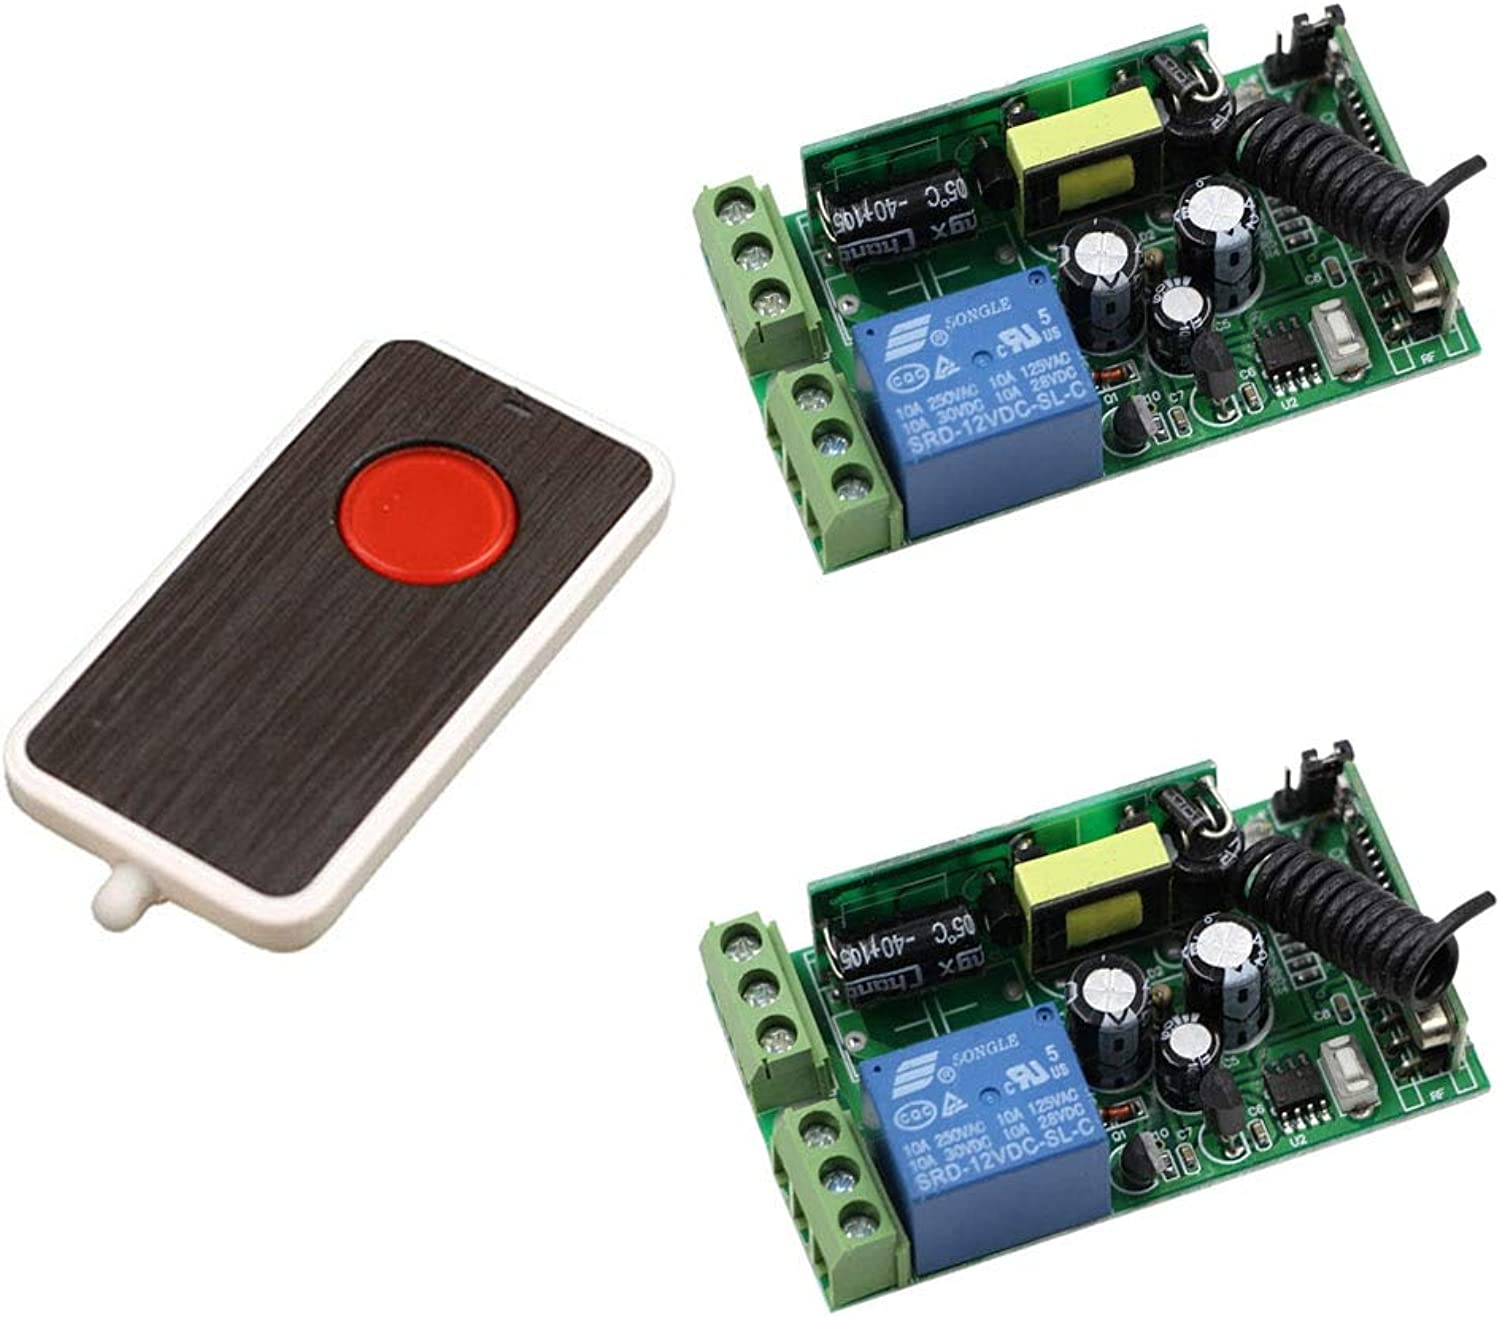 New AC 85V 220V 110V 250V 1CH 10A Radio Controller RF Wireless Remote Control Switch One Button Transmitter and 2pcs Receivers  (color  433mhz)